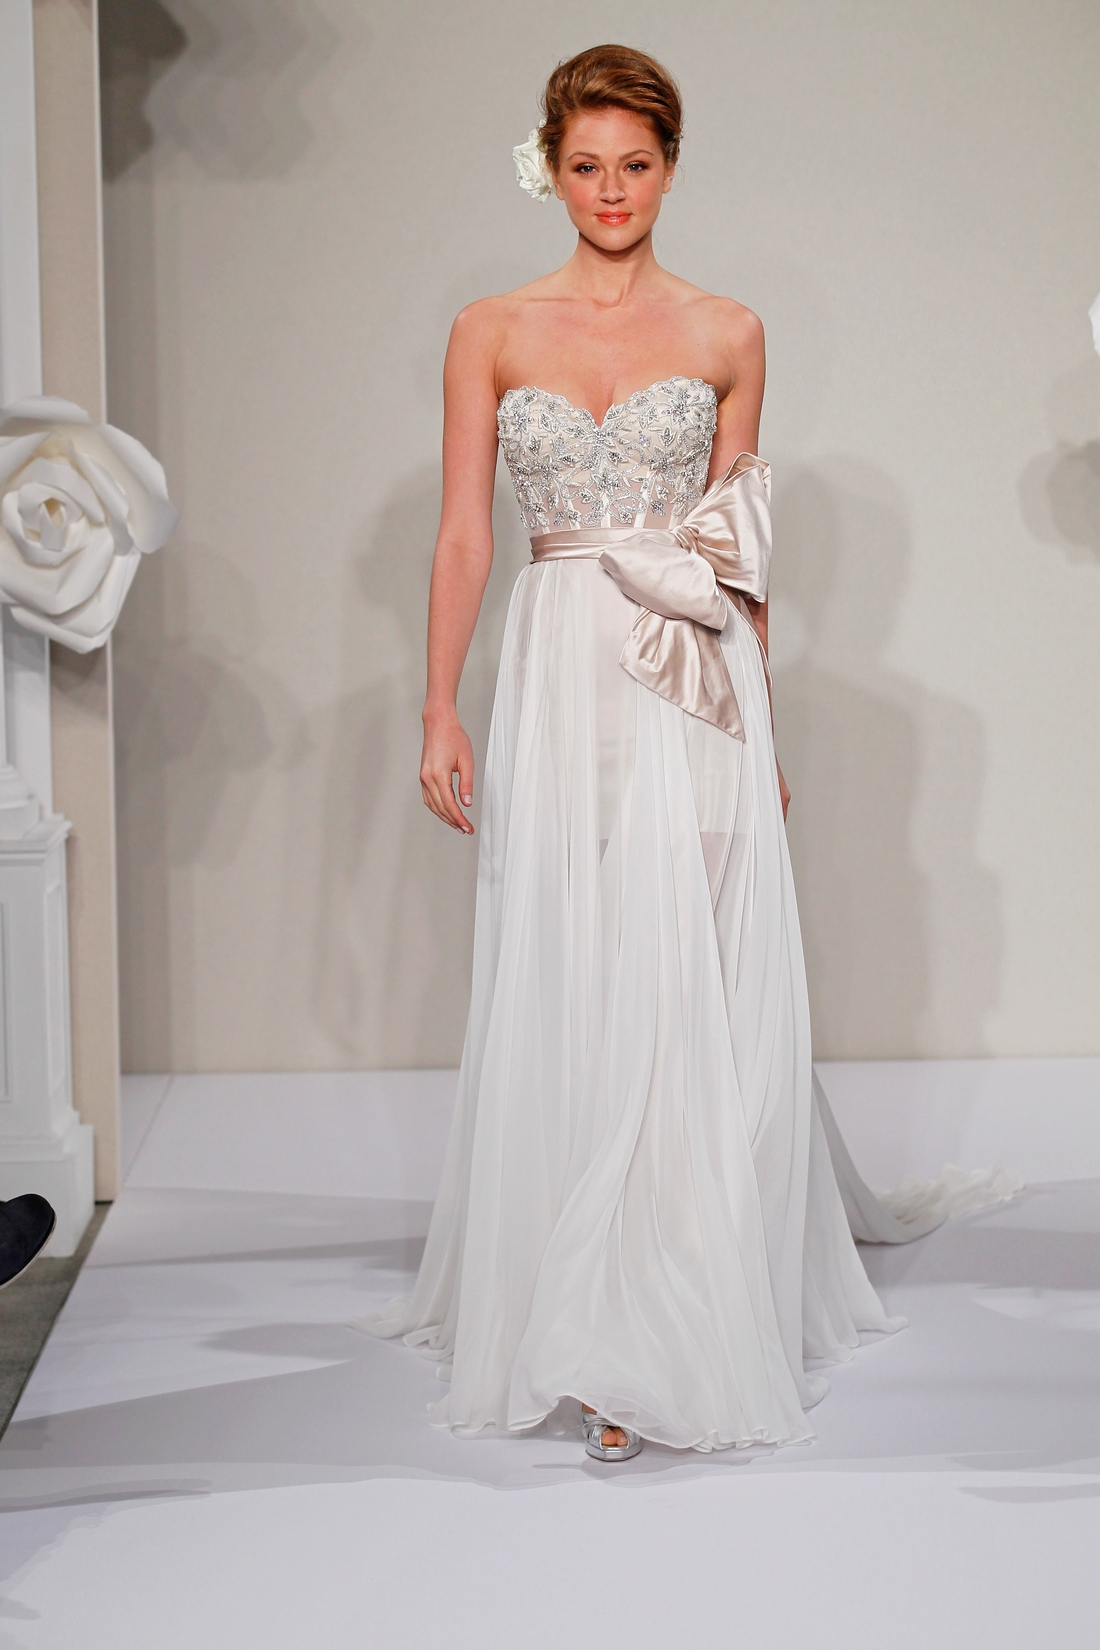 : panina wedding dress 2014